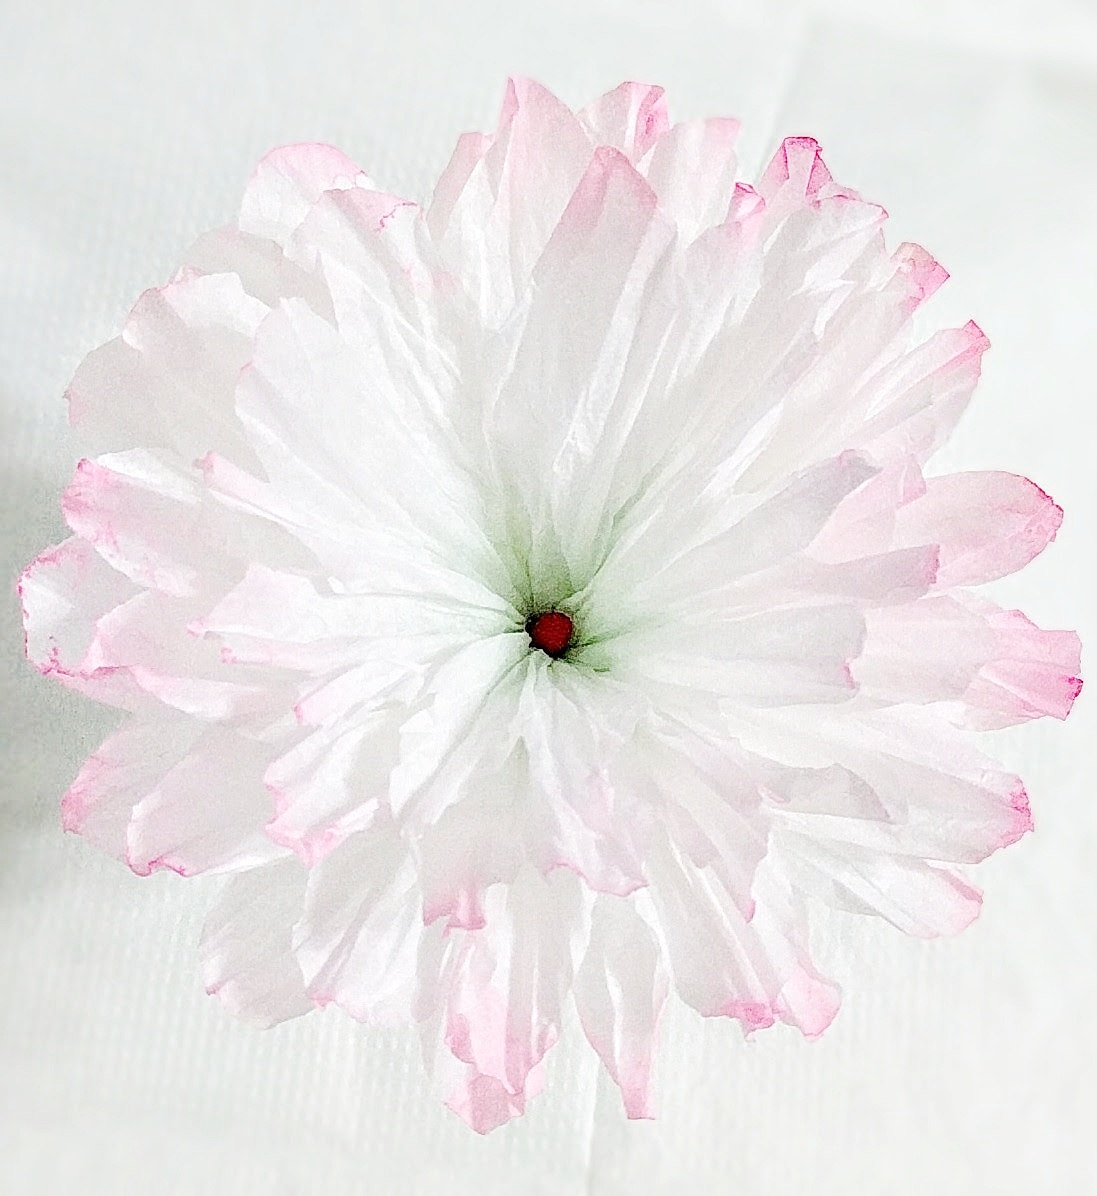 Coffee Filter Flowers - To get gradating pink edged petals and green gradation at the centre, I diluted craft paint and wet the coffee filters before dipping them into the mixture.